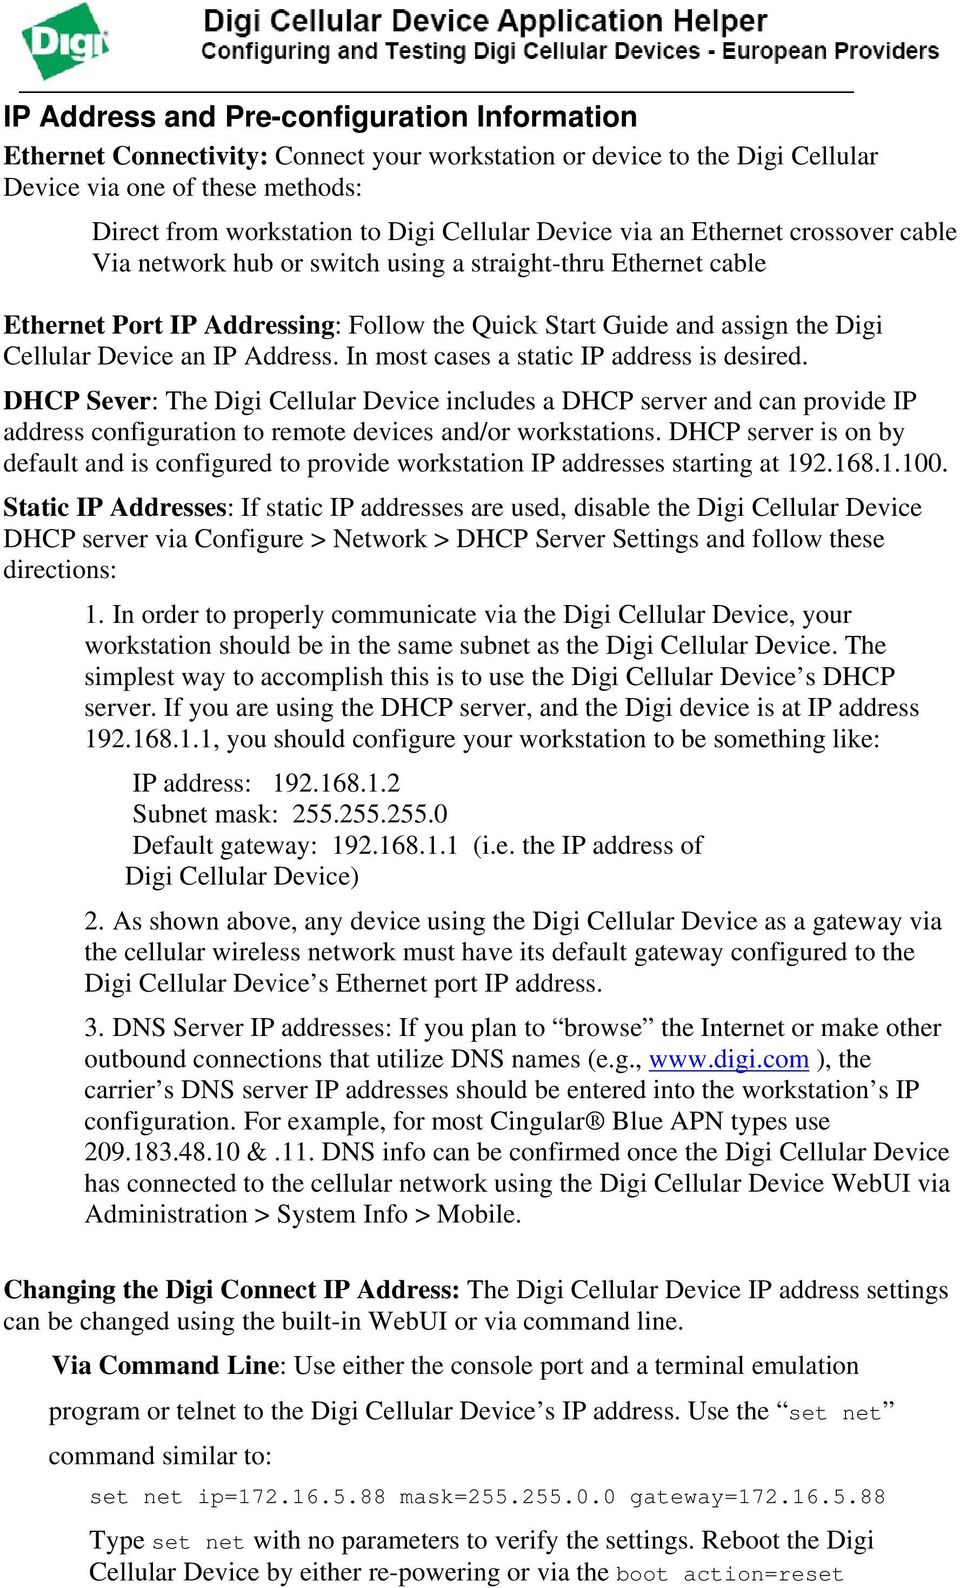 IP Address. In most cases a static IP address is desired. DHCP Sever: The Digi Cellular Device includes a DHCP server and can provide IP address configuration to remote devices and/or workstations.